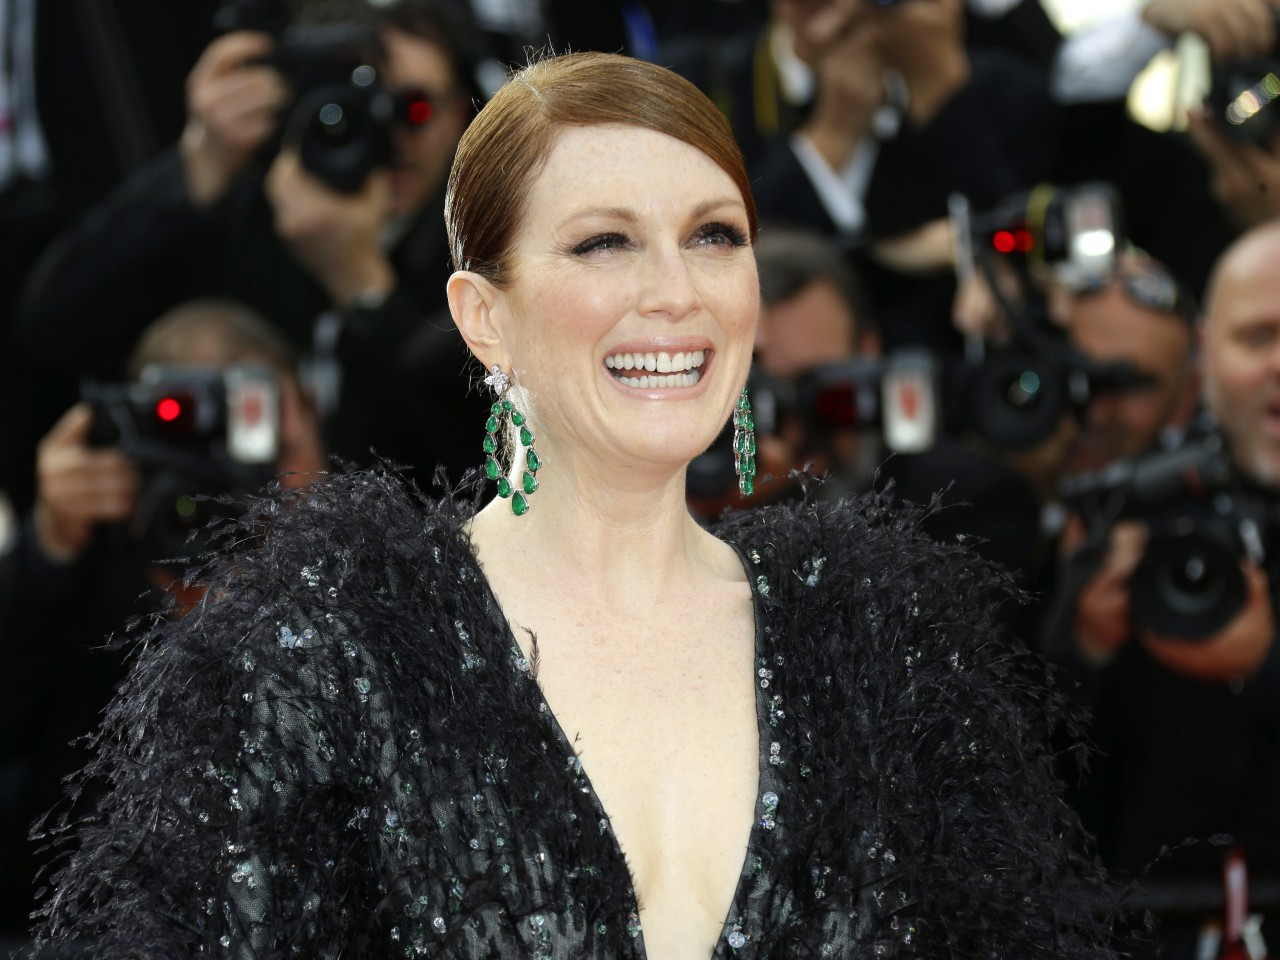 julianne moore slams the ldquo calcified gun lobby rdquo for being out of enlargejulianne